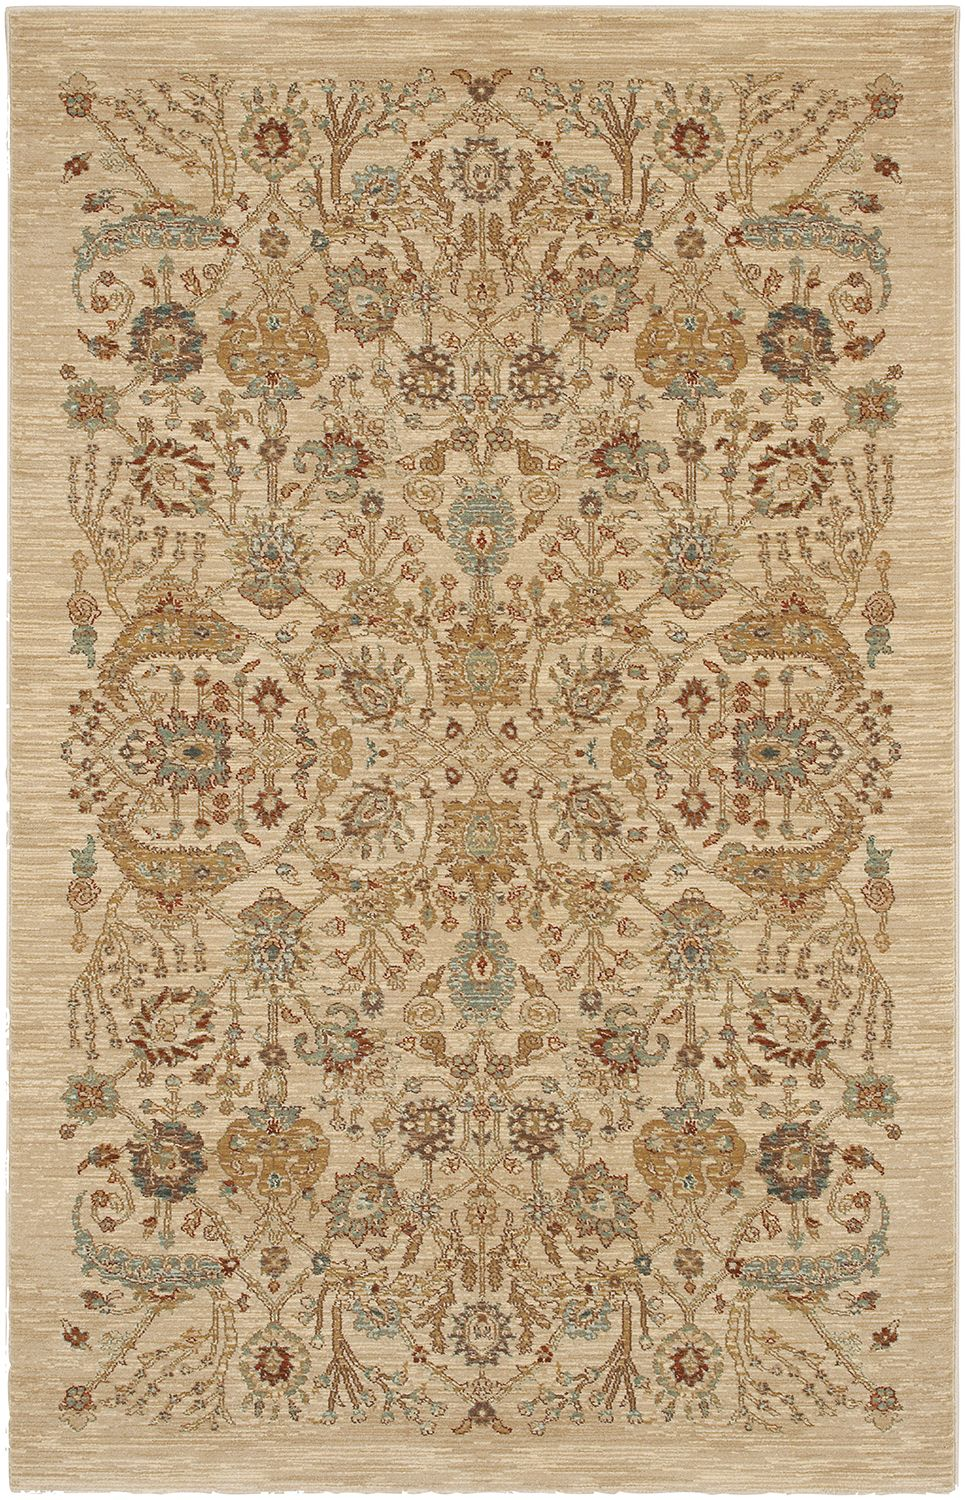 karastan shapura traditional area rug collection